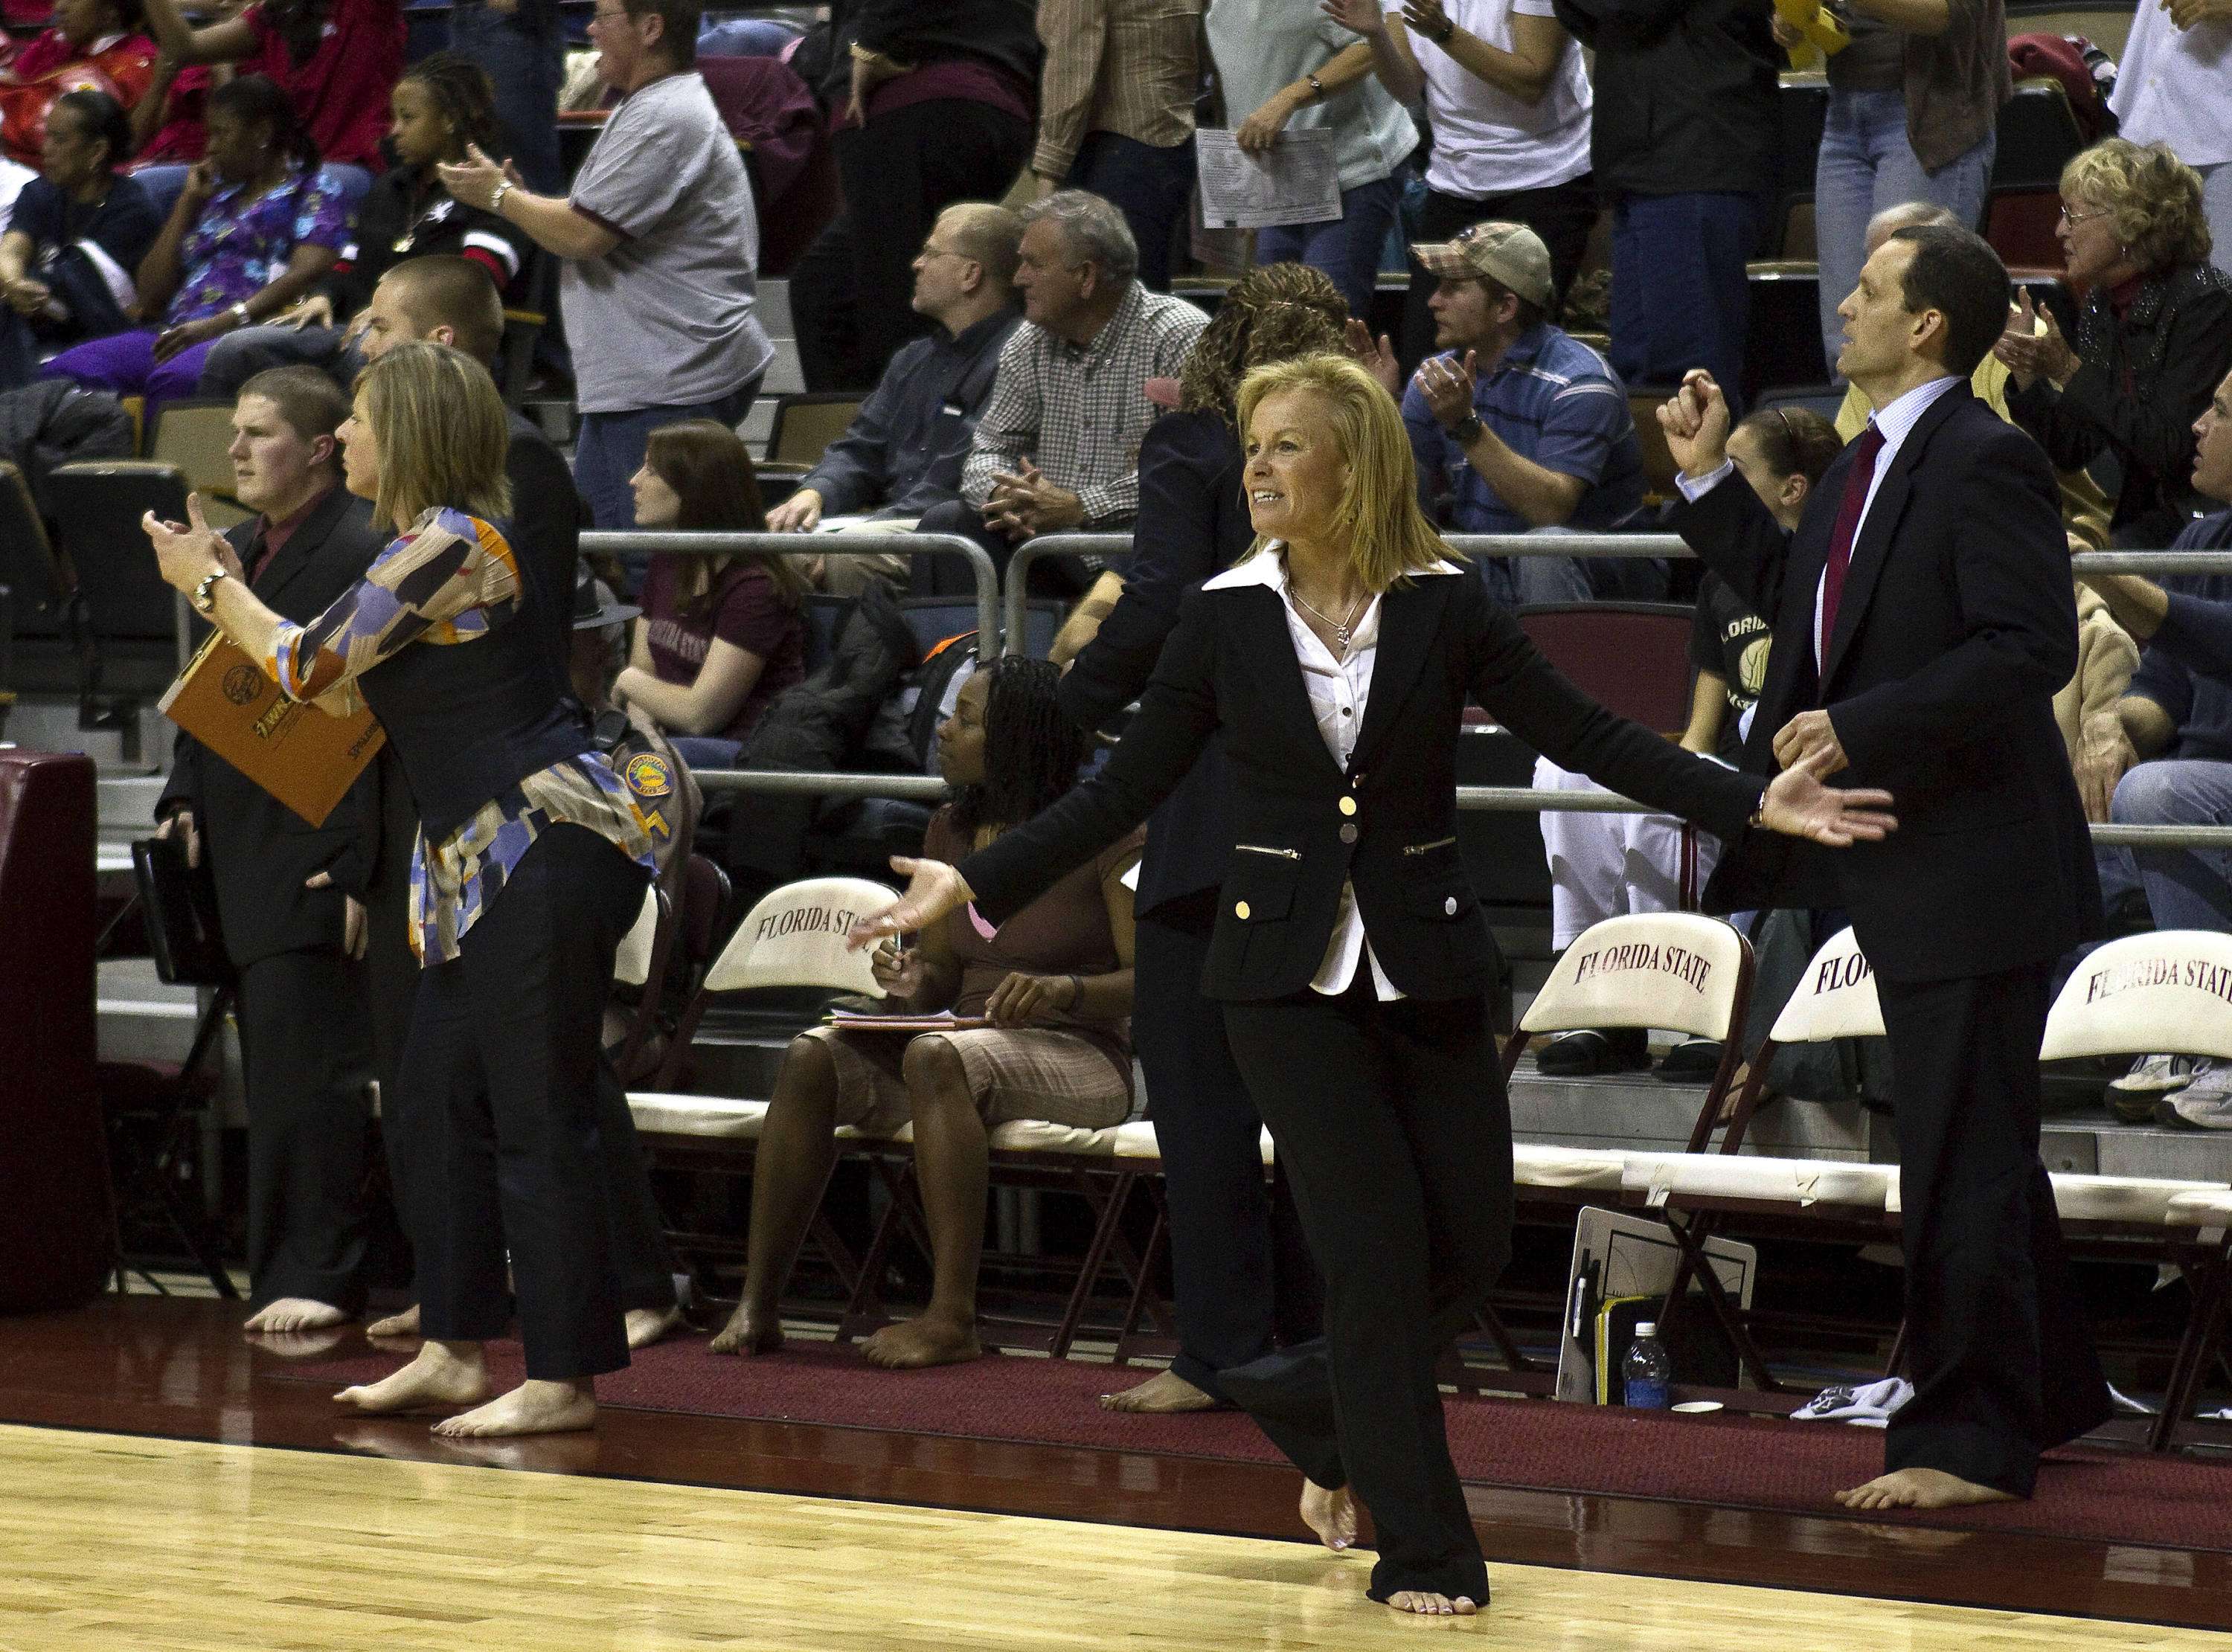 FSU vs Miami - 01/24/11 - Head Coach Sue Semrau, Coach Cori Close, Coach Lance White